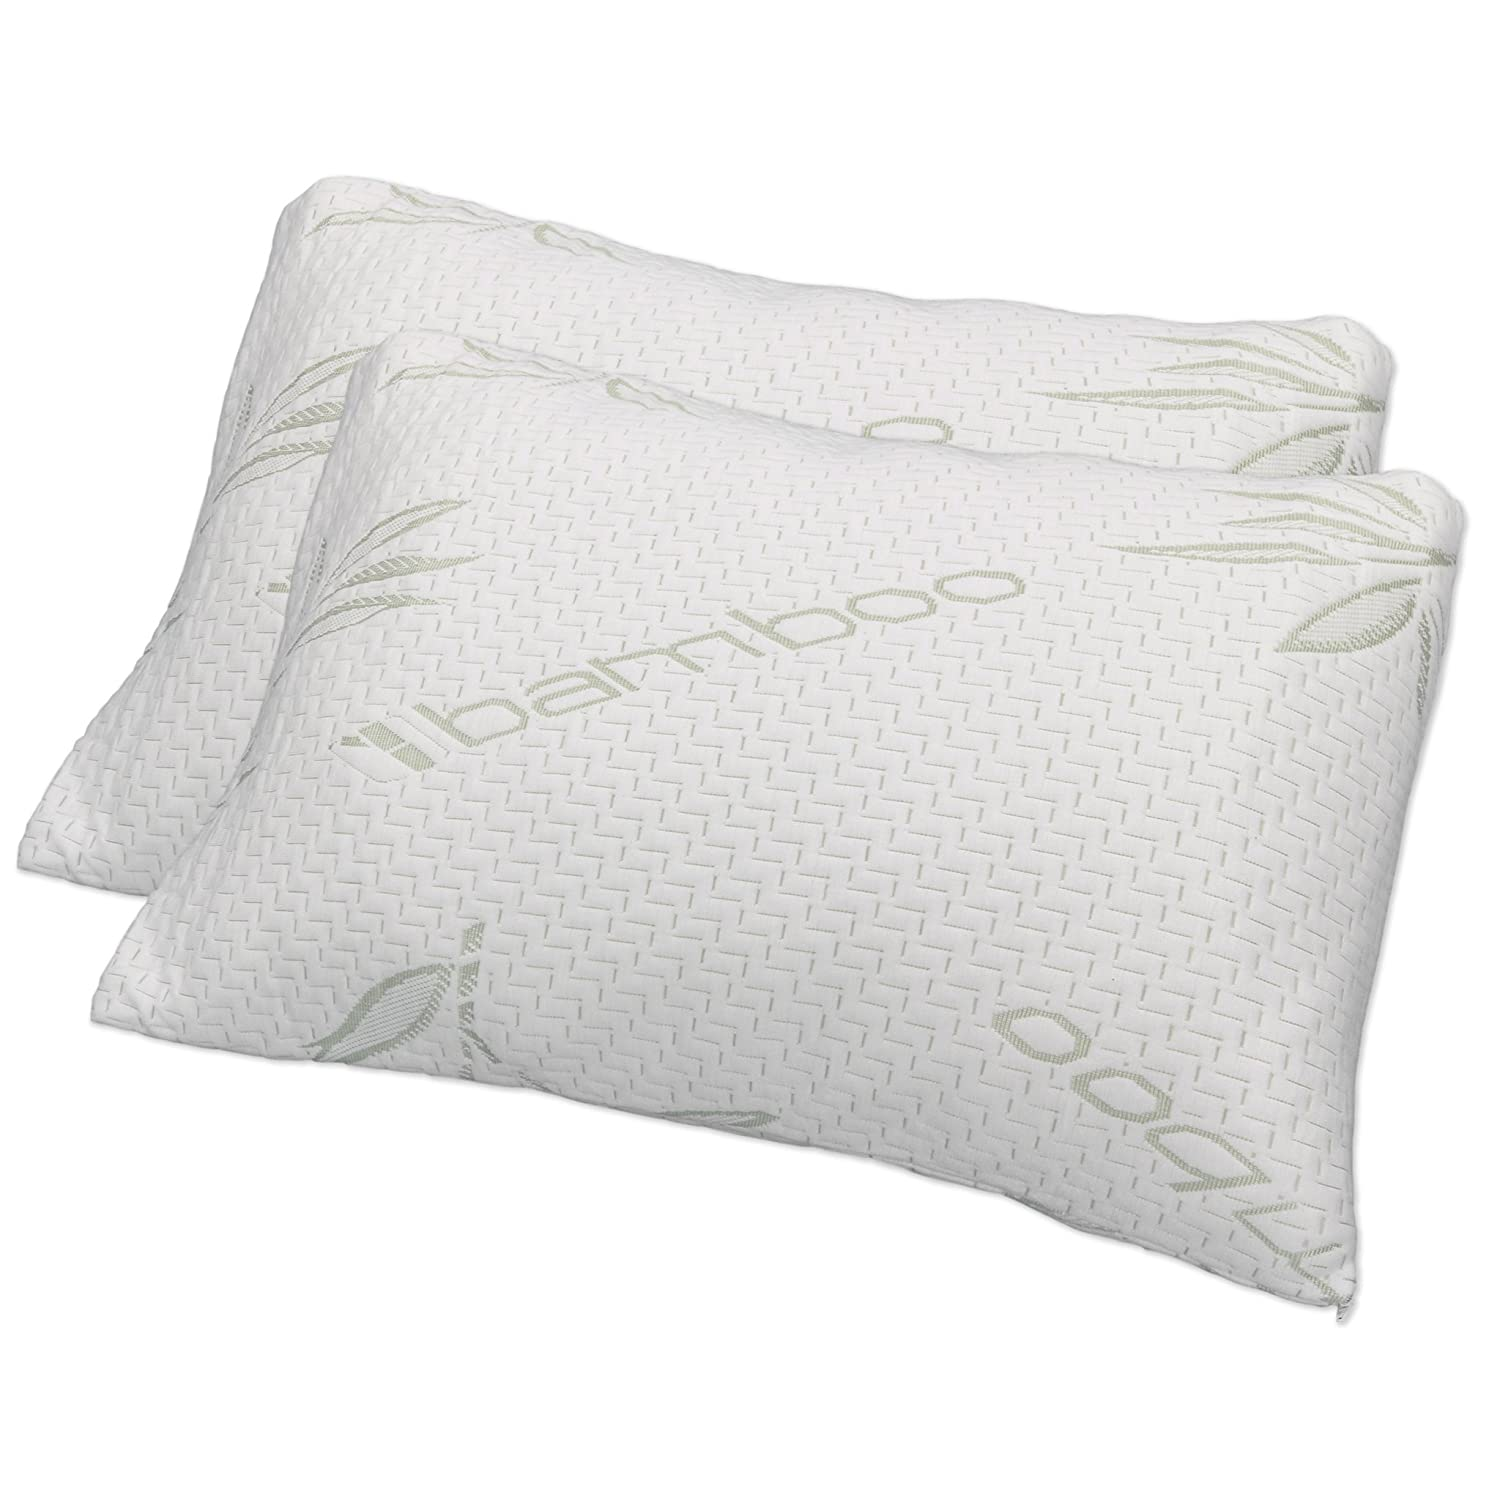 Hotel Comfort Bamboo Covered Memory Foam Pillow- Queen - Set of 2